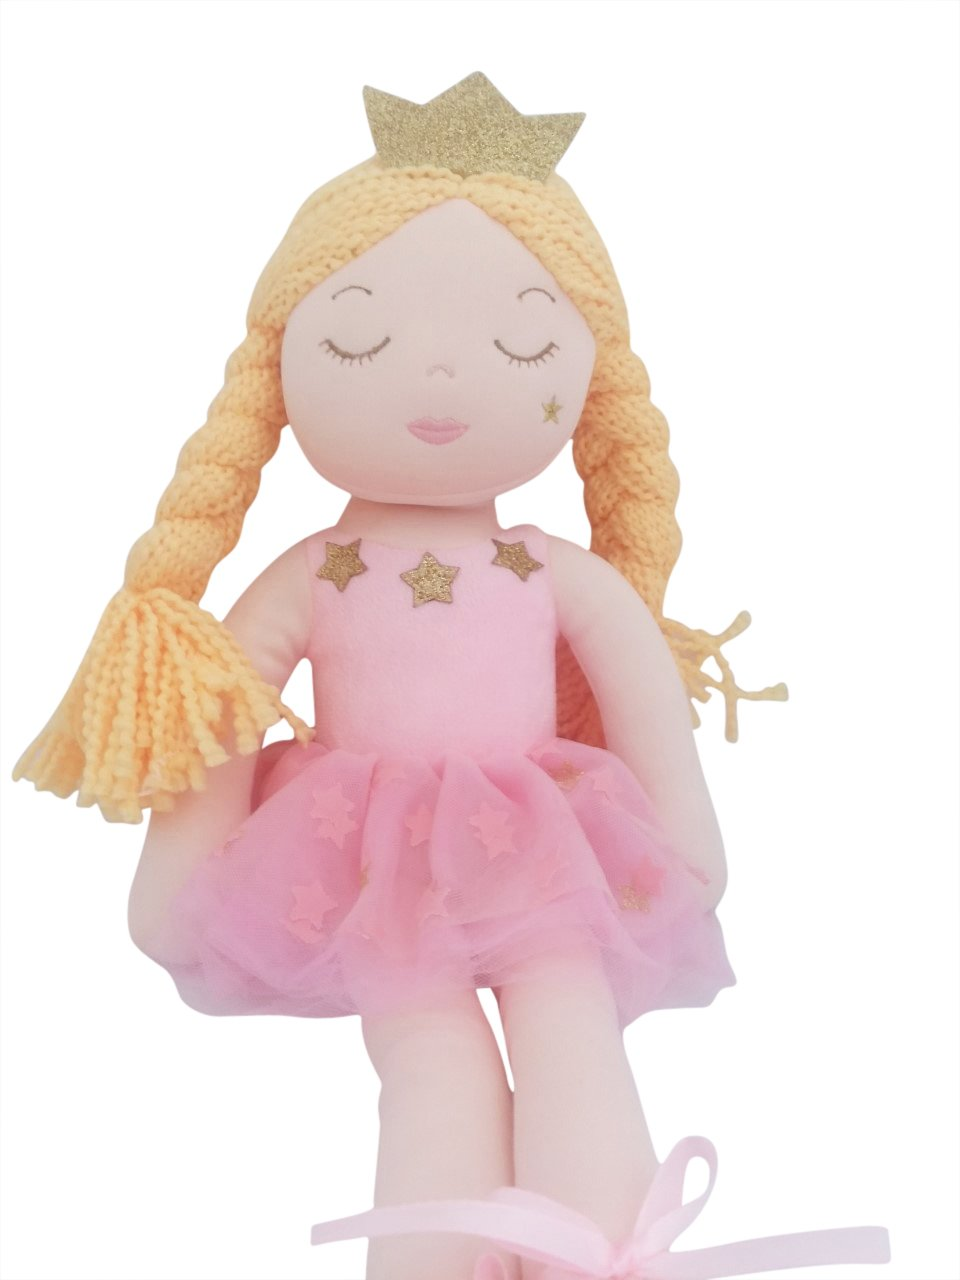 Sophia the Princess Soft Doll